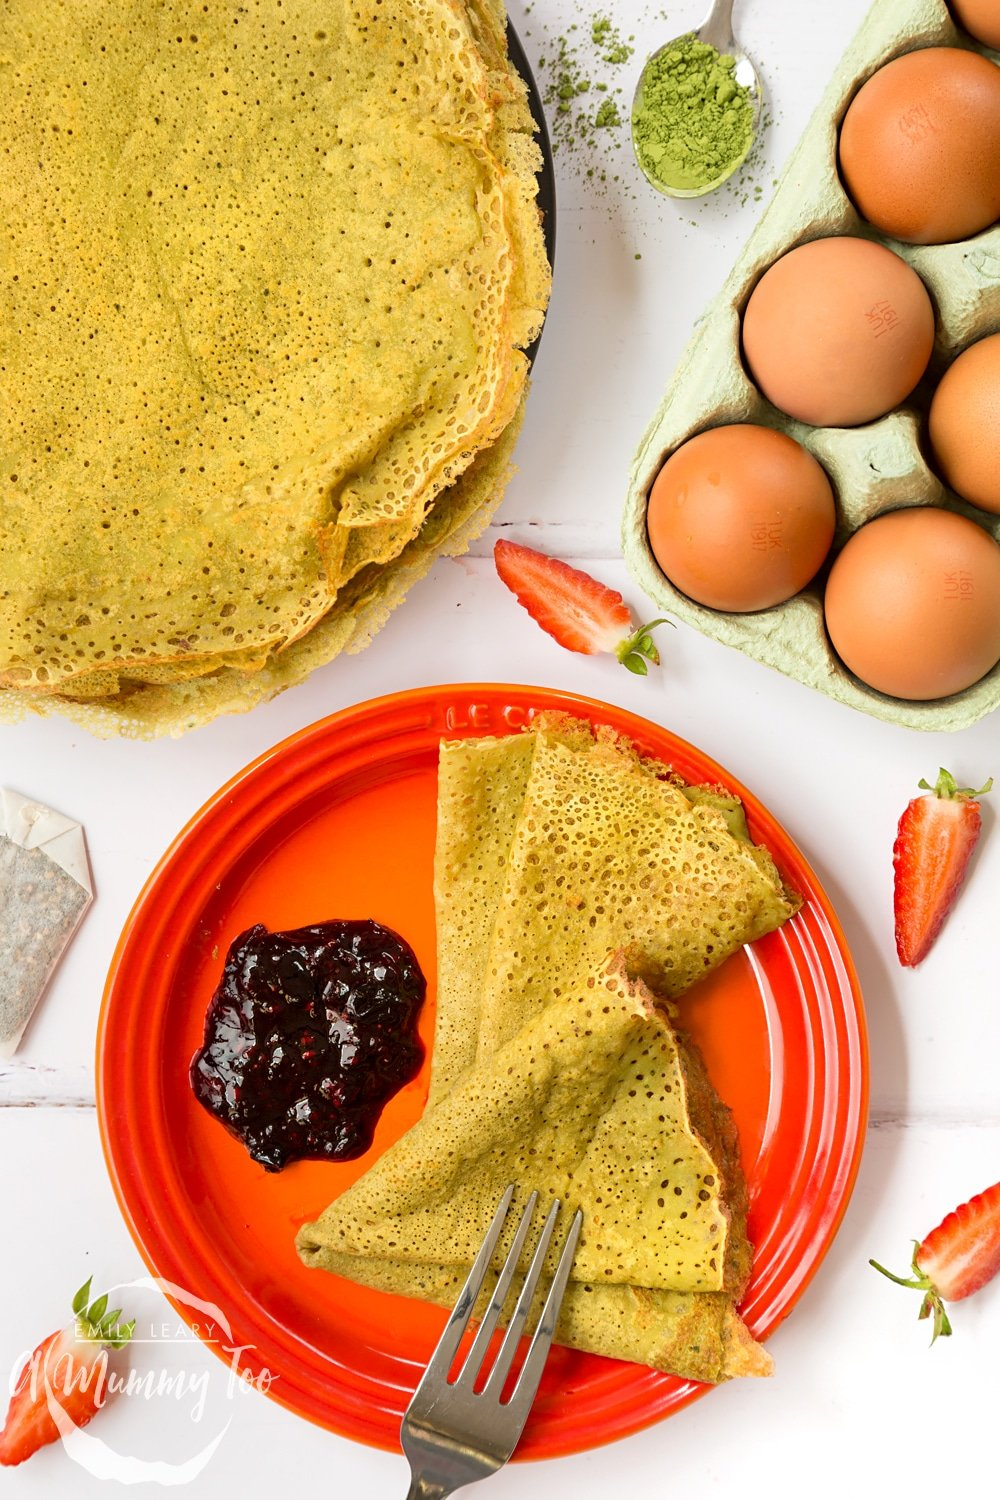 Delicate matcha pancakes, flavoured with matcha tea and served with a homemade berry sauce